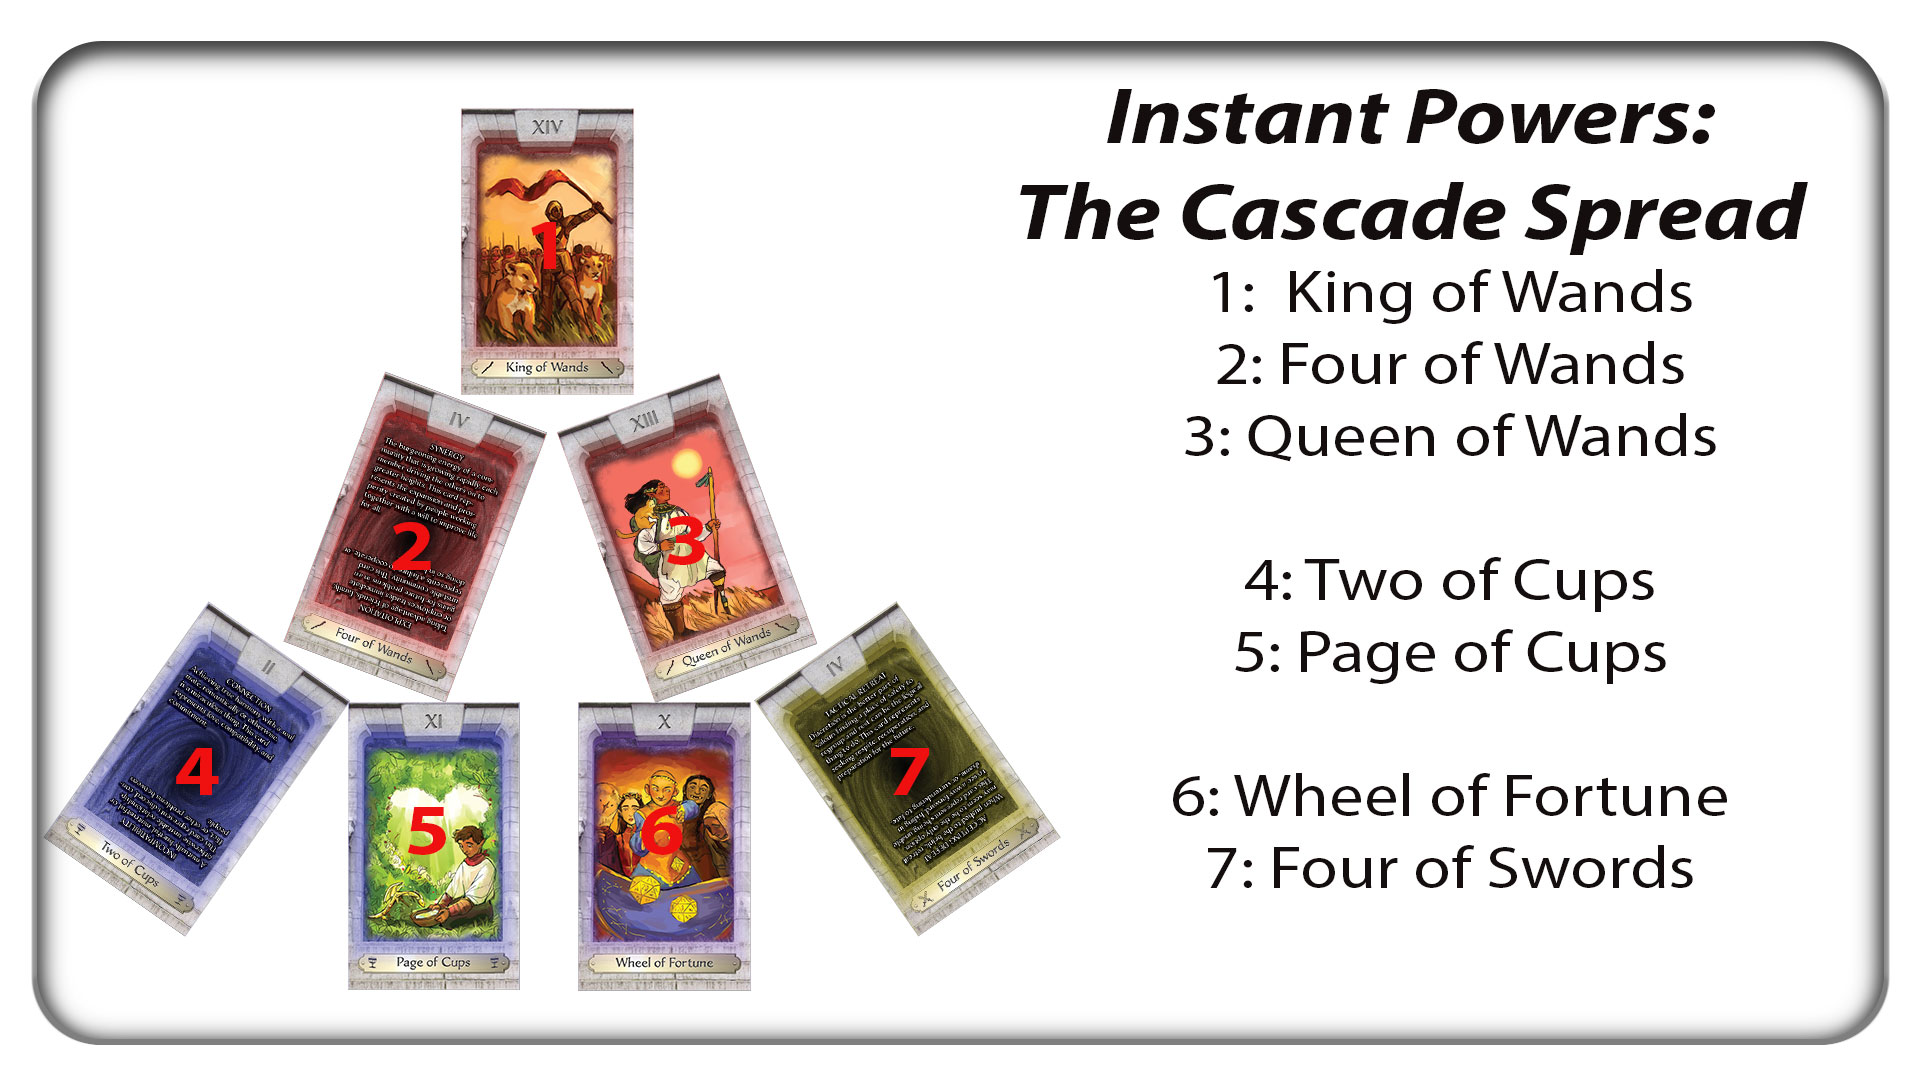 An example of the Cascade Spread in action.